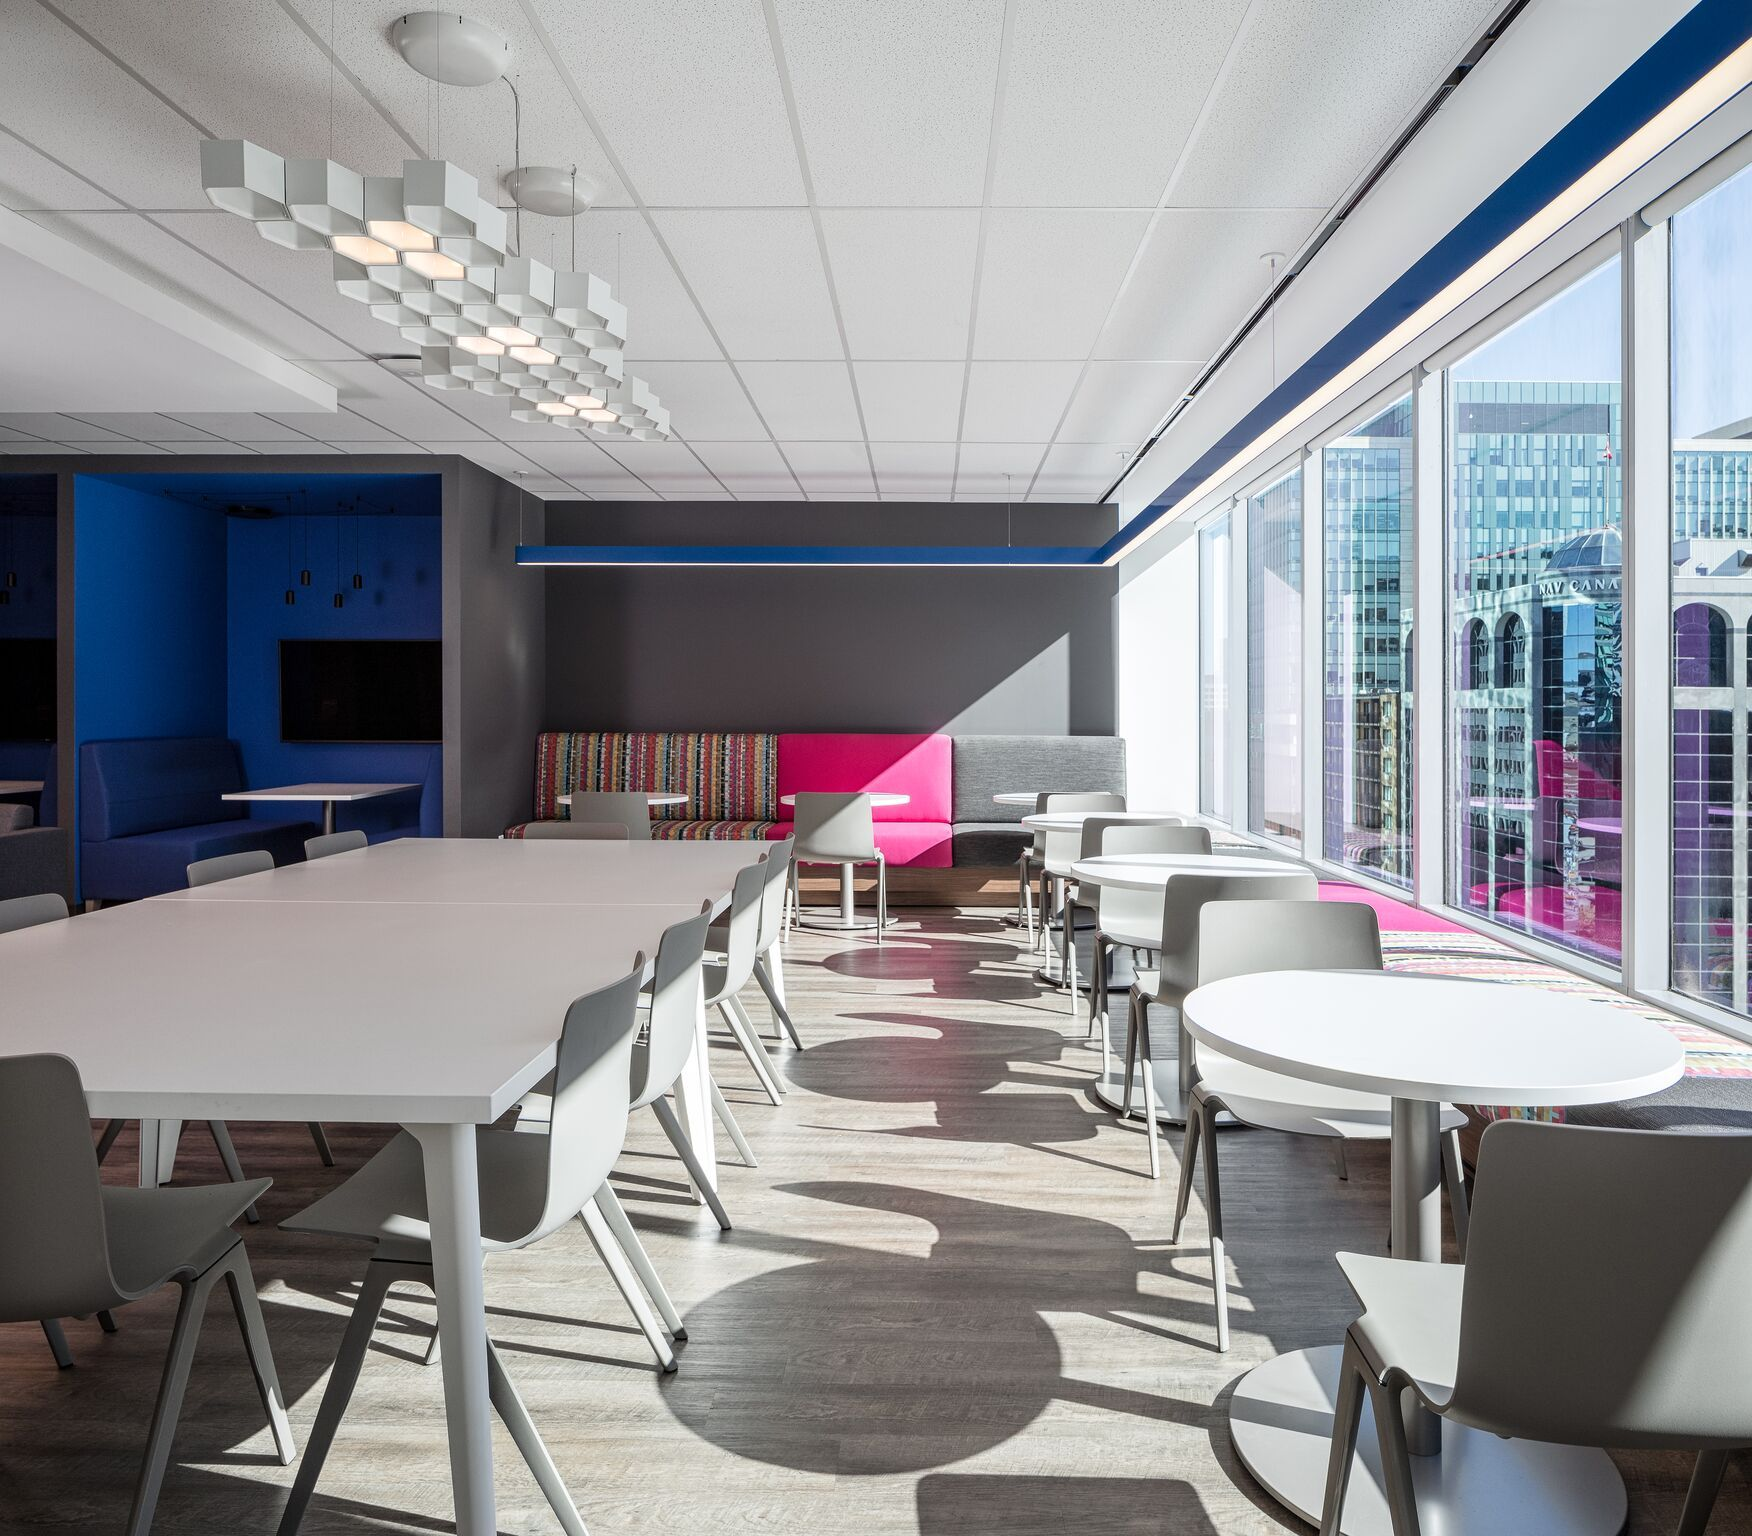 Luceplan Honeycomb Fixture Illuminates This Modern Office Space In Downtown